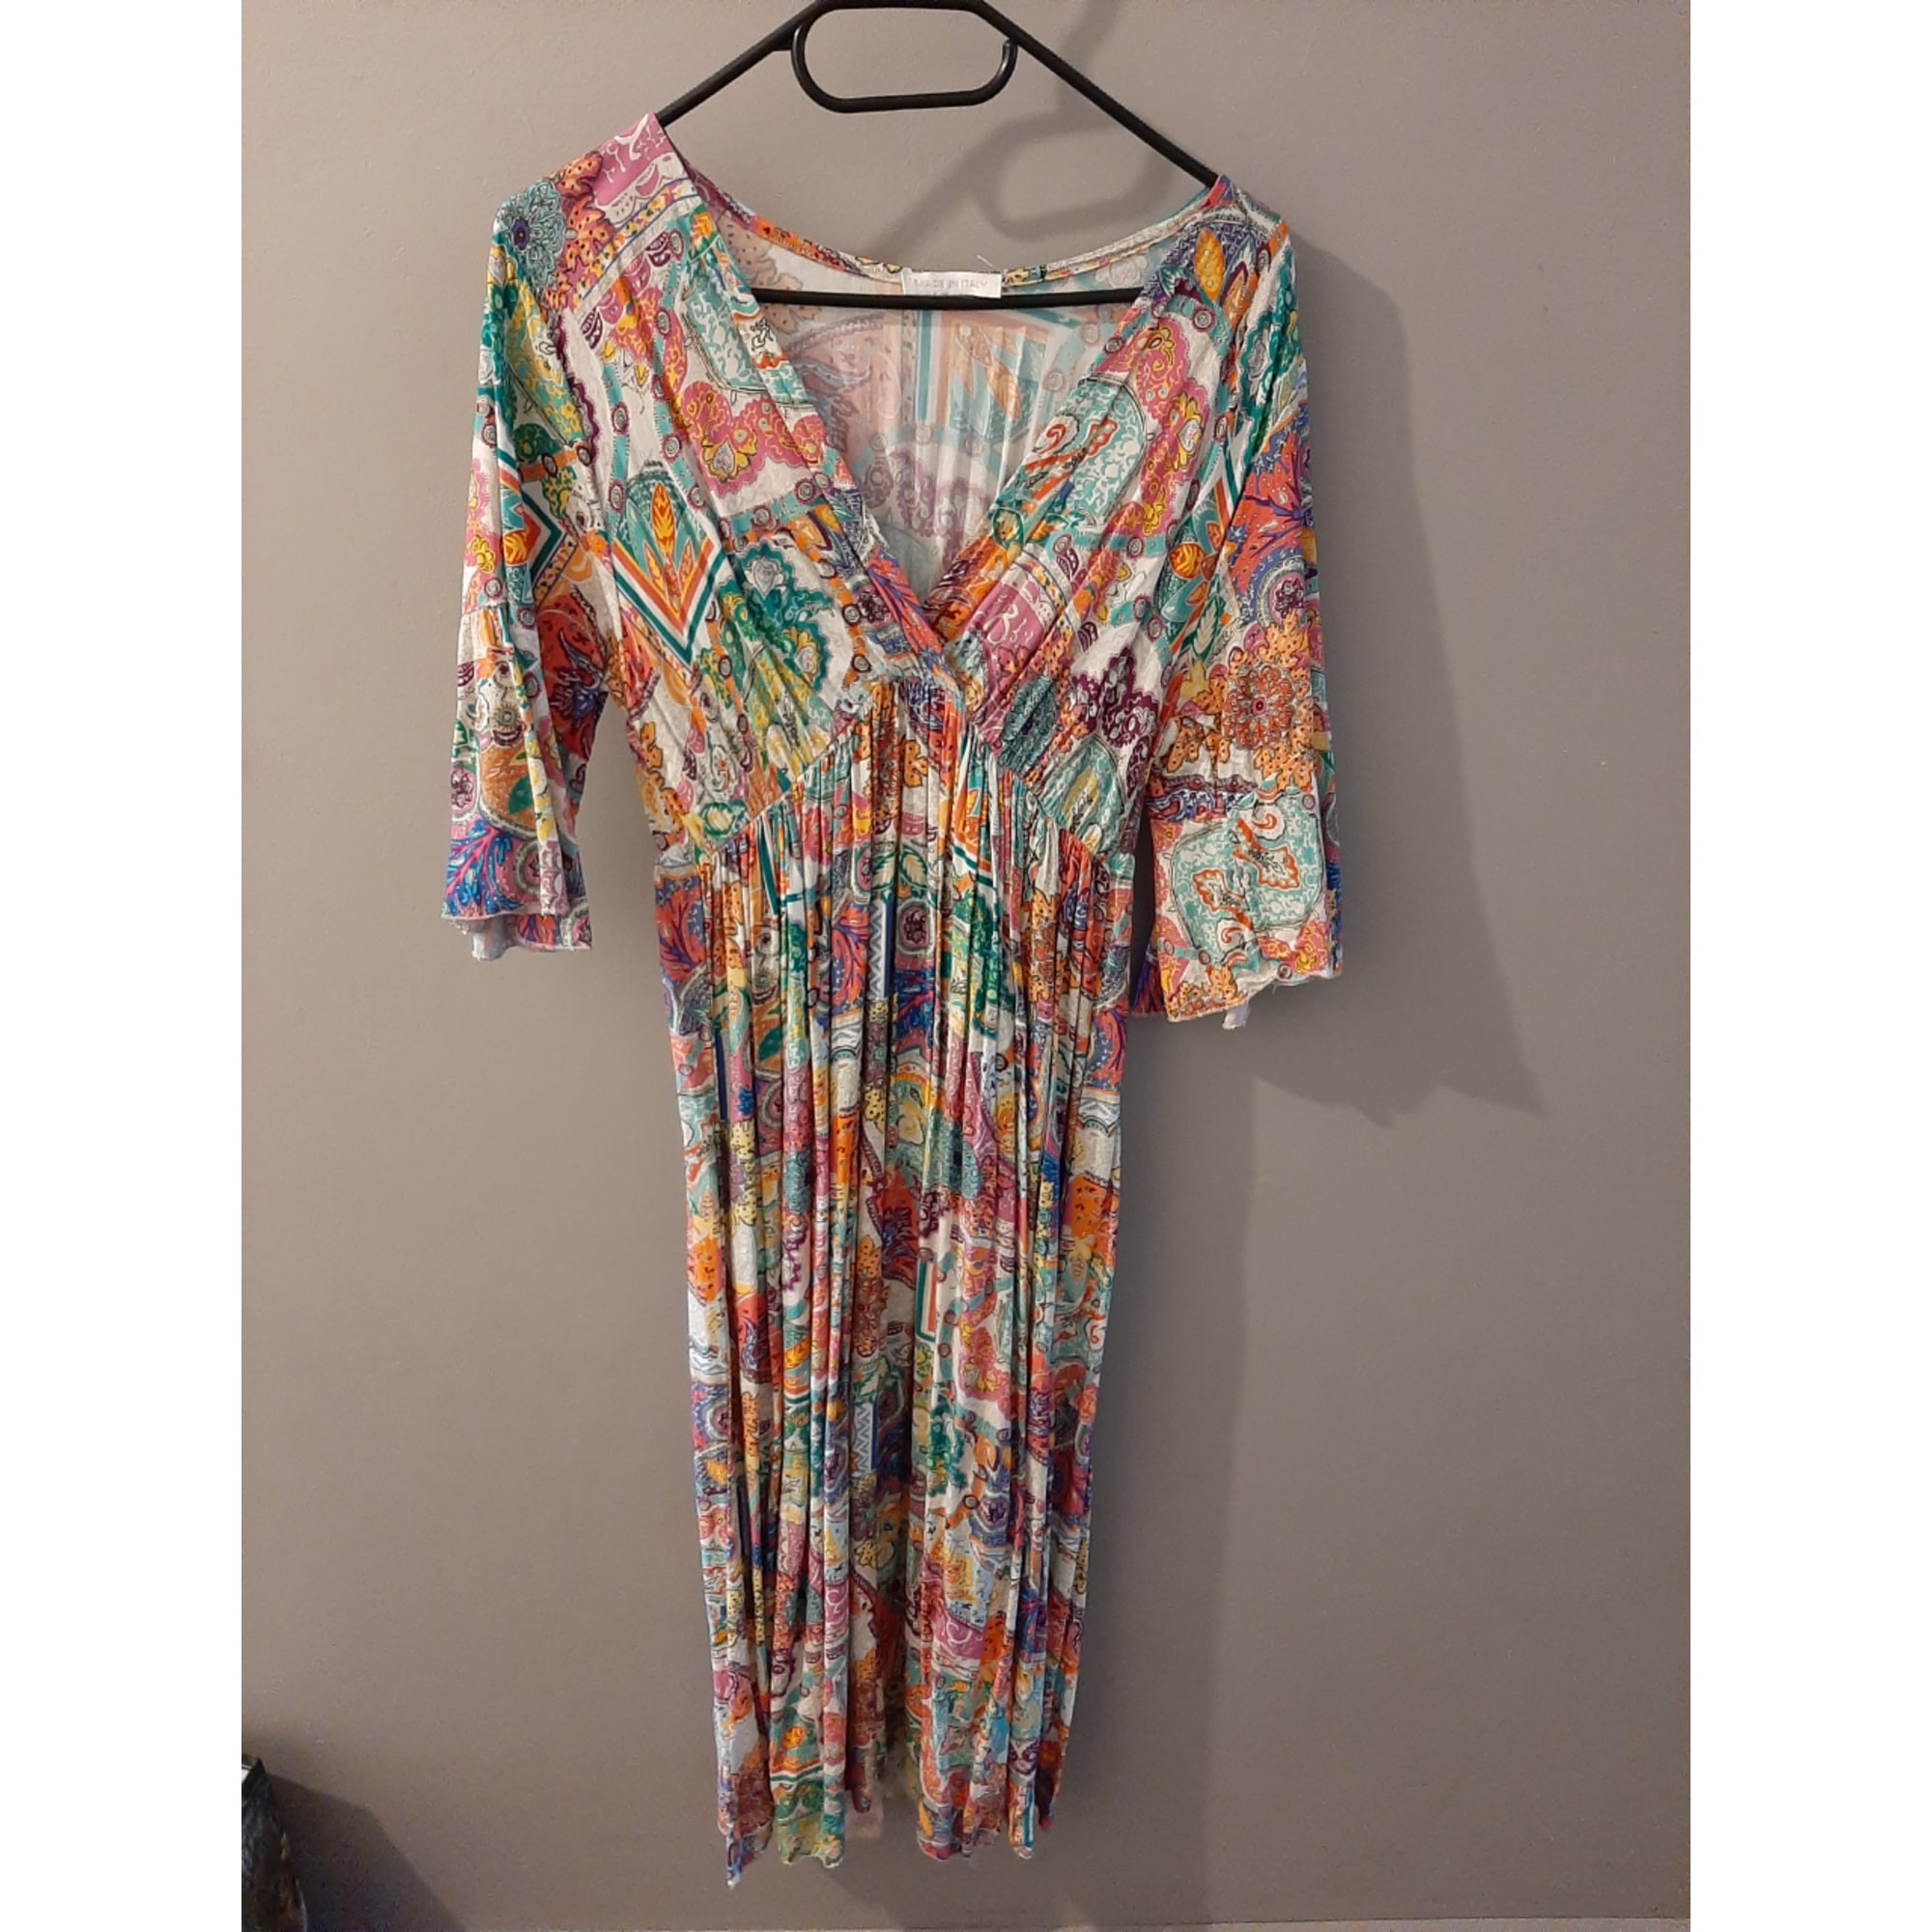 Robe longue MADE IN ITALIE Multicouleur